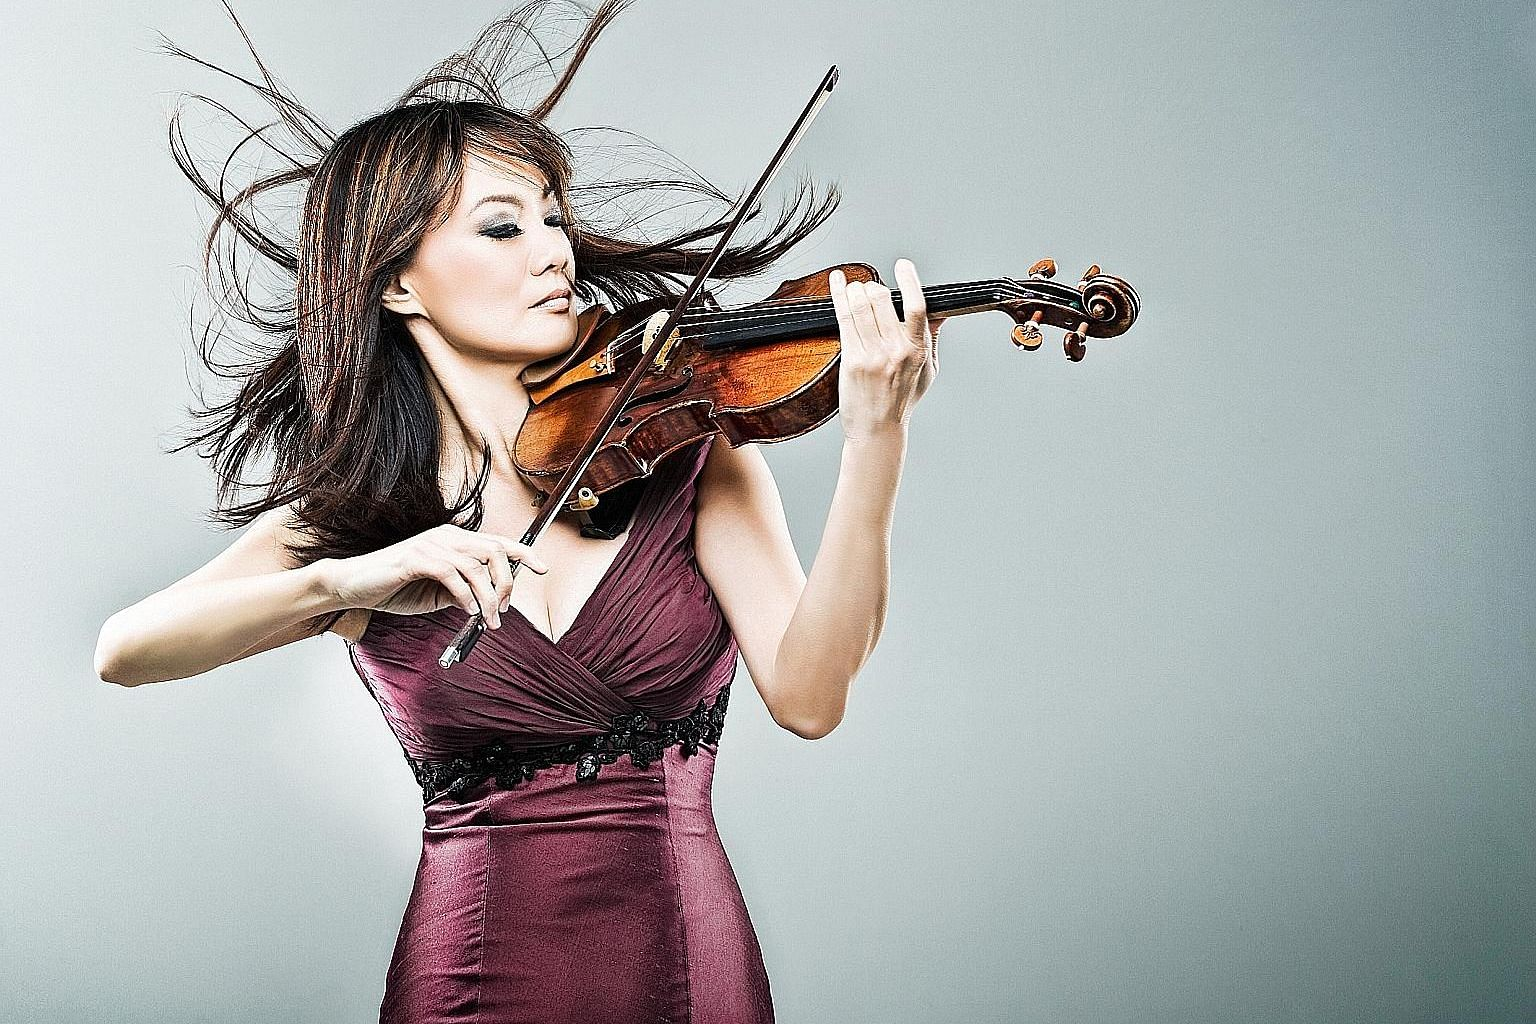 United States-based violinist Siow Lee-Chin